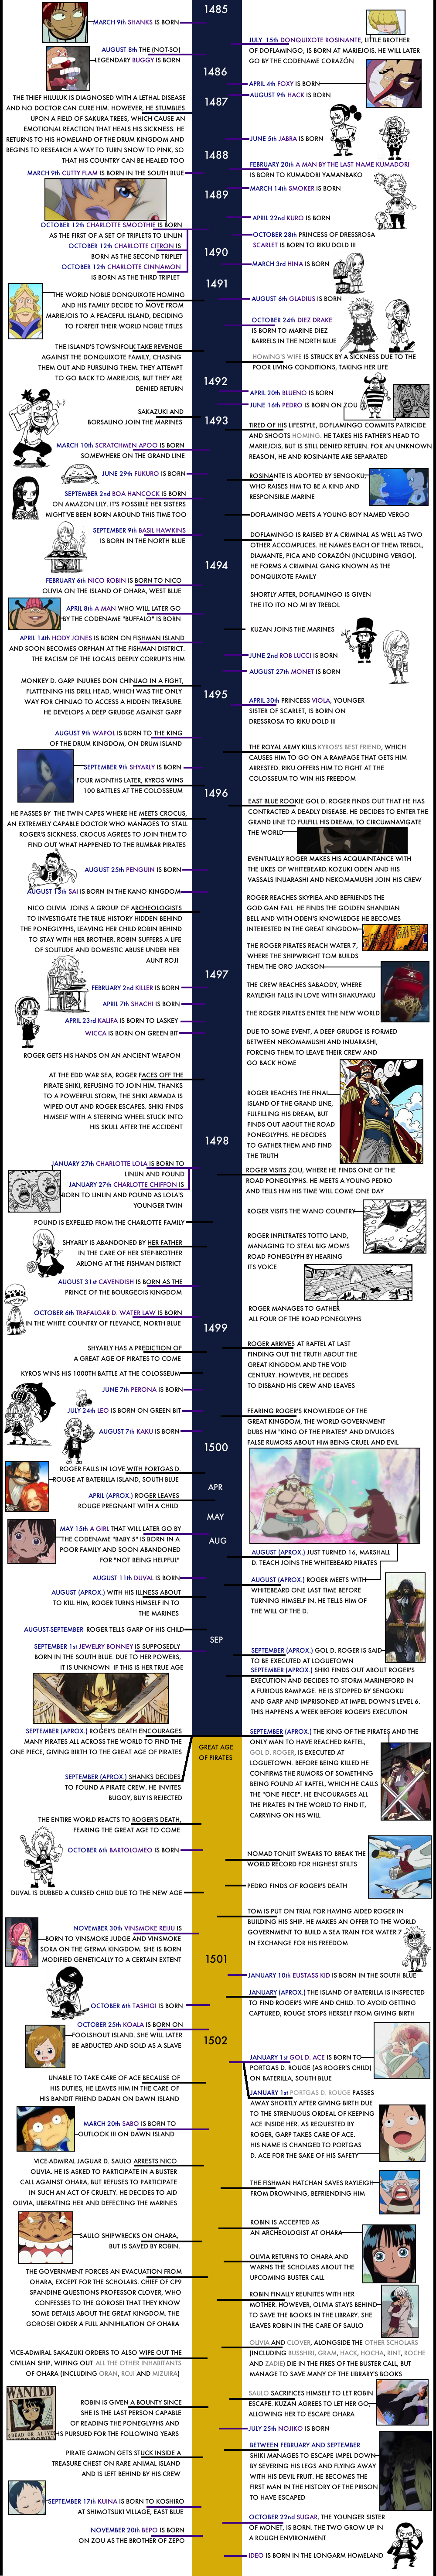 The One Piece Timeline – The Library of Ohara